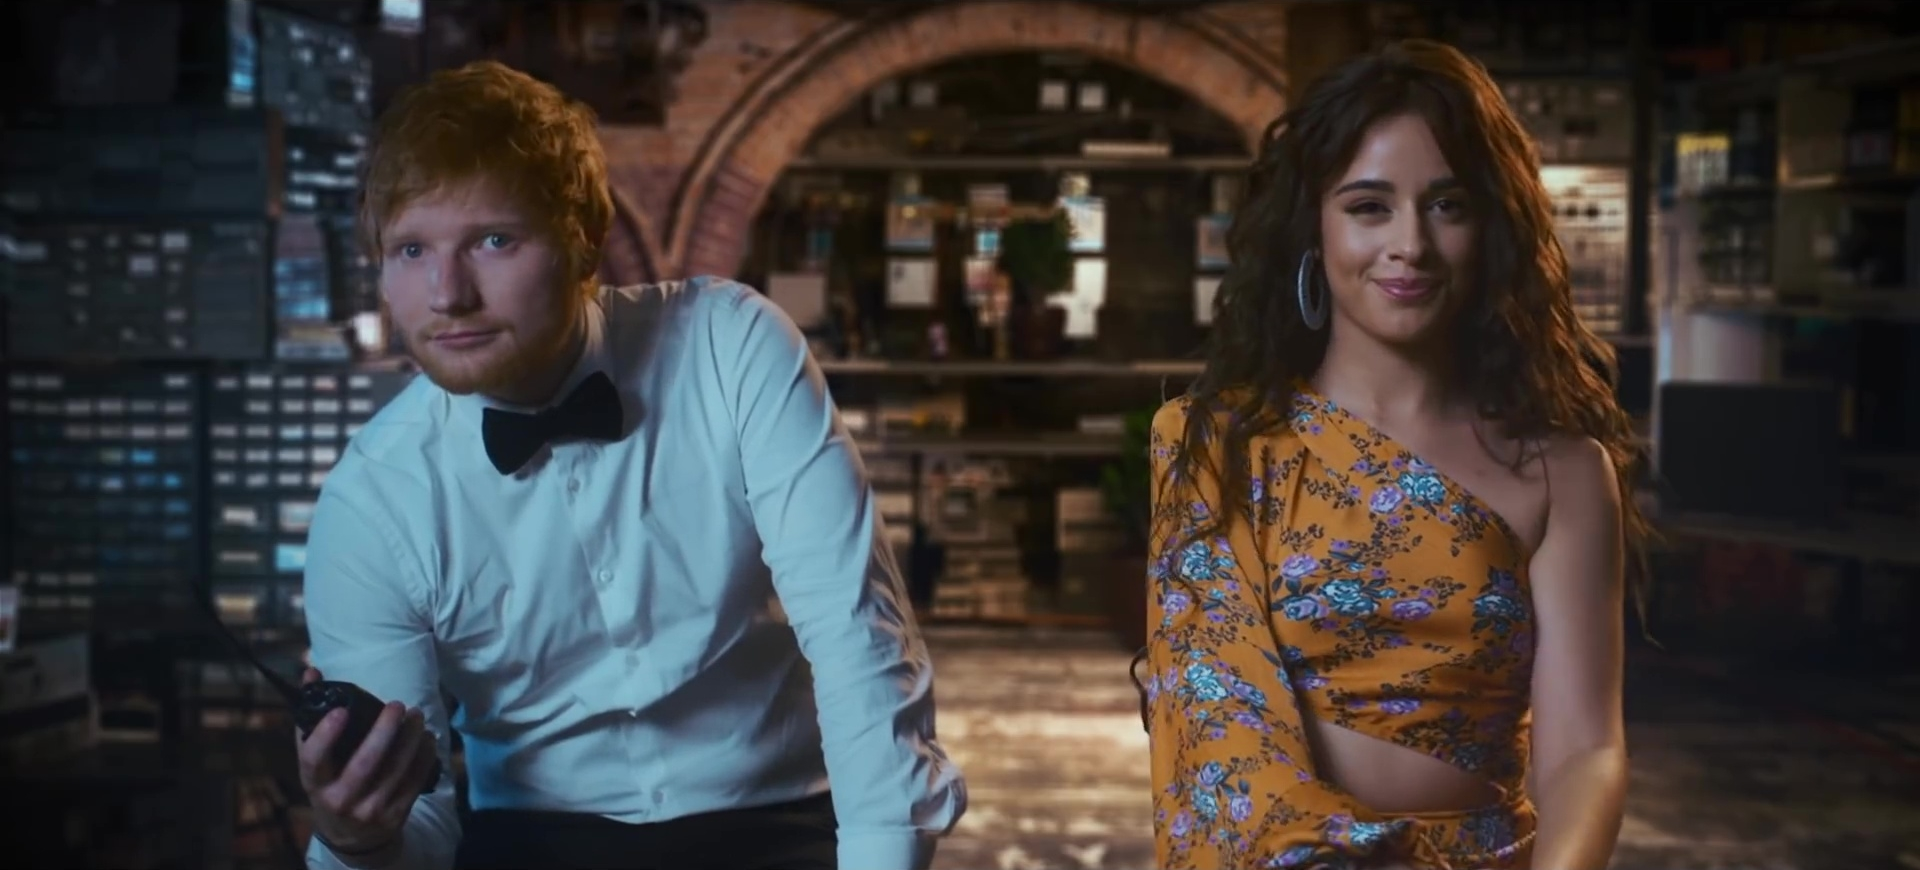 ed sheeran camila cabello cardi b south of the border clip